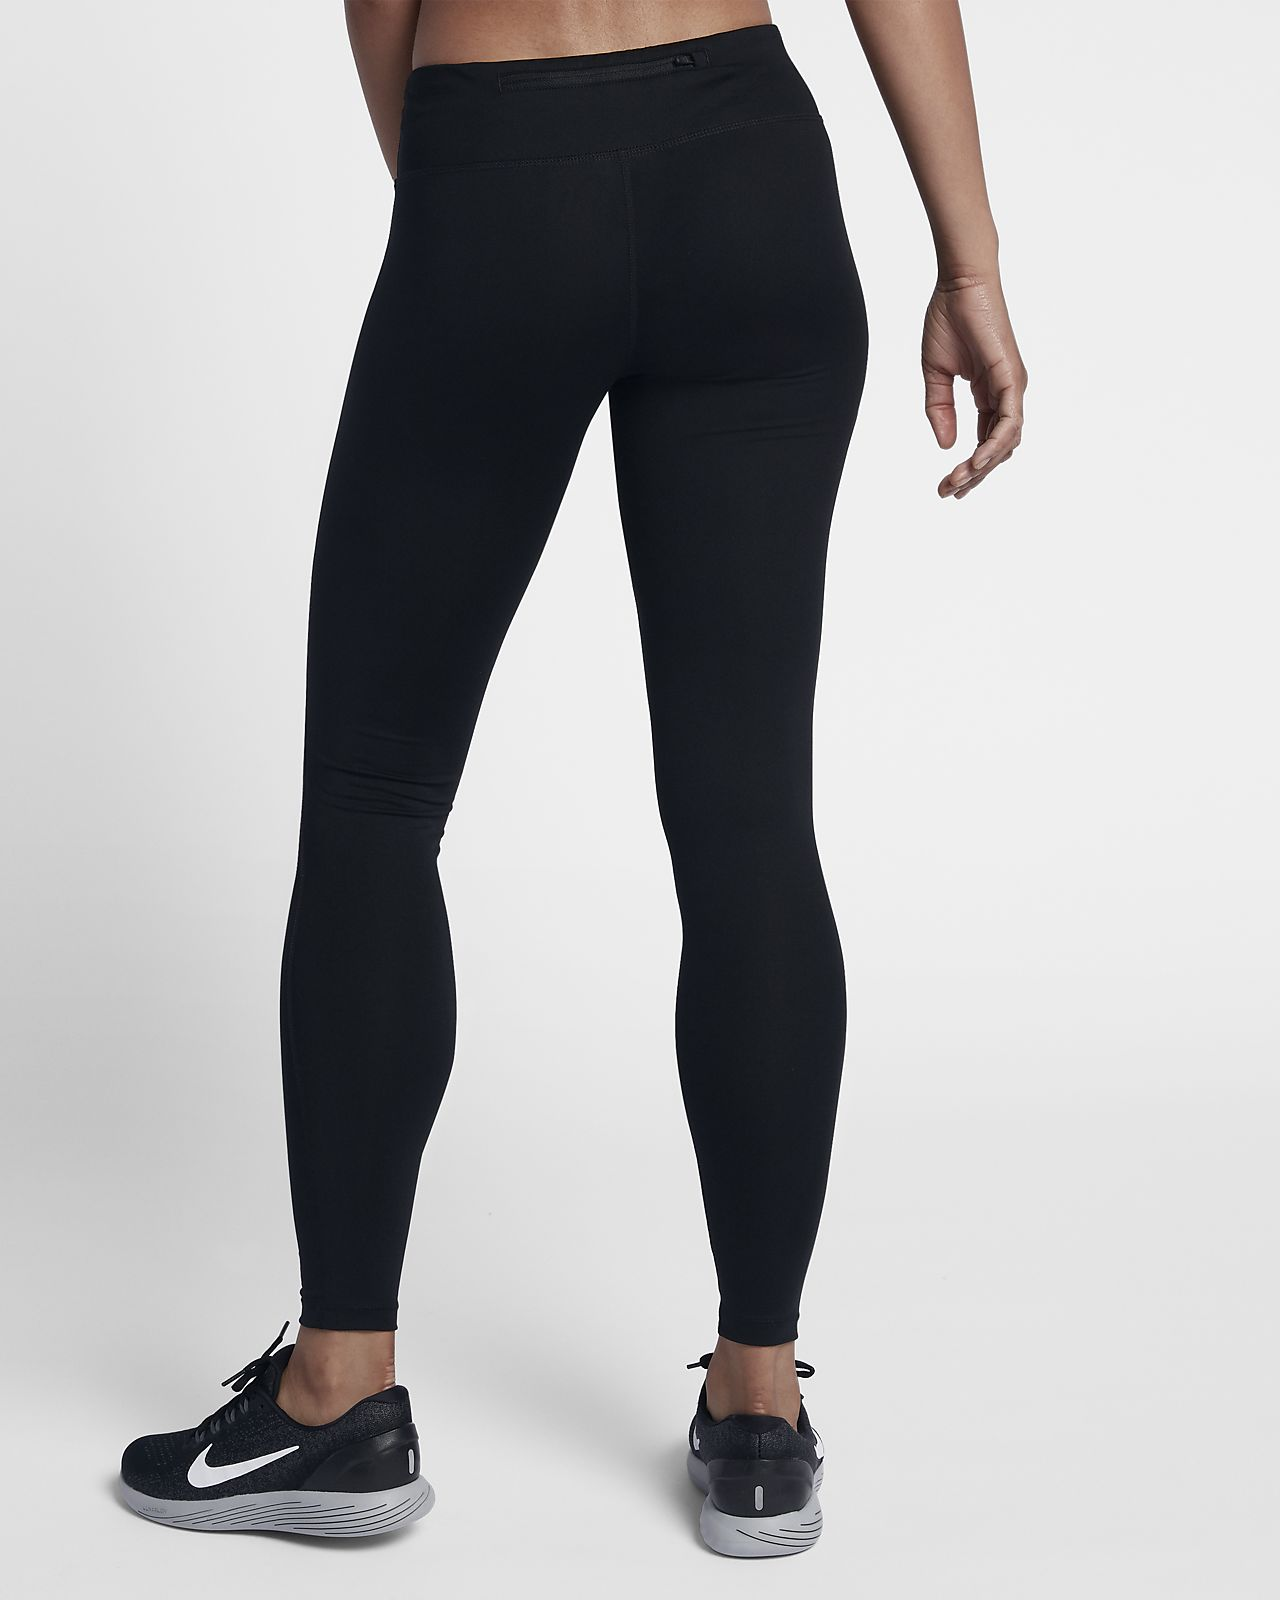 ... Nike Power Essential Women's Logo Running Tights